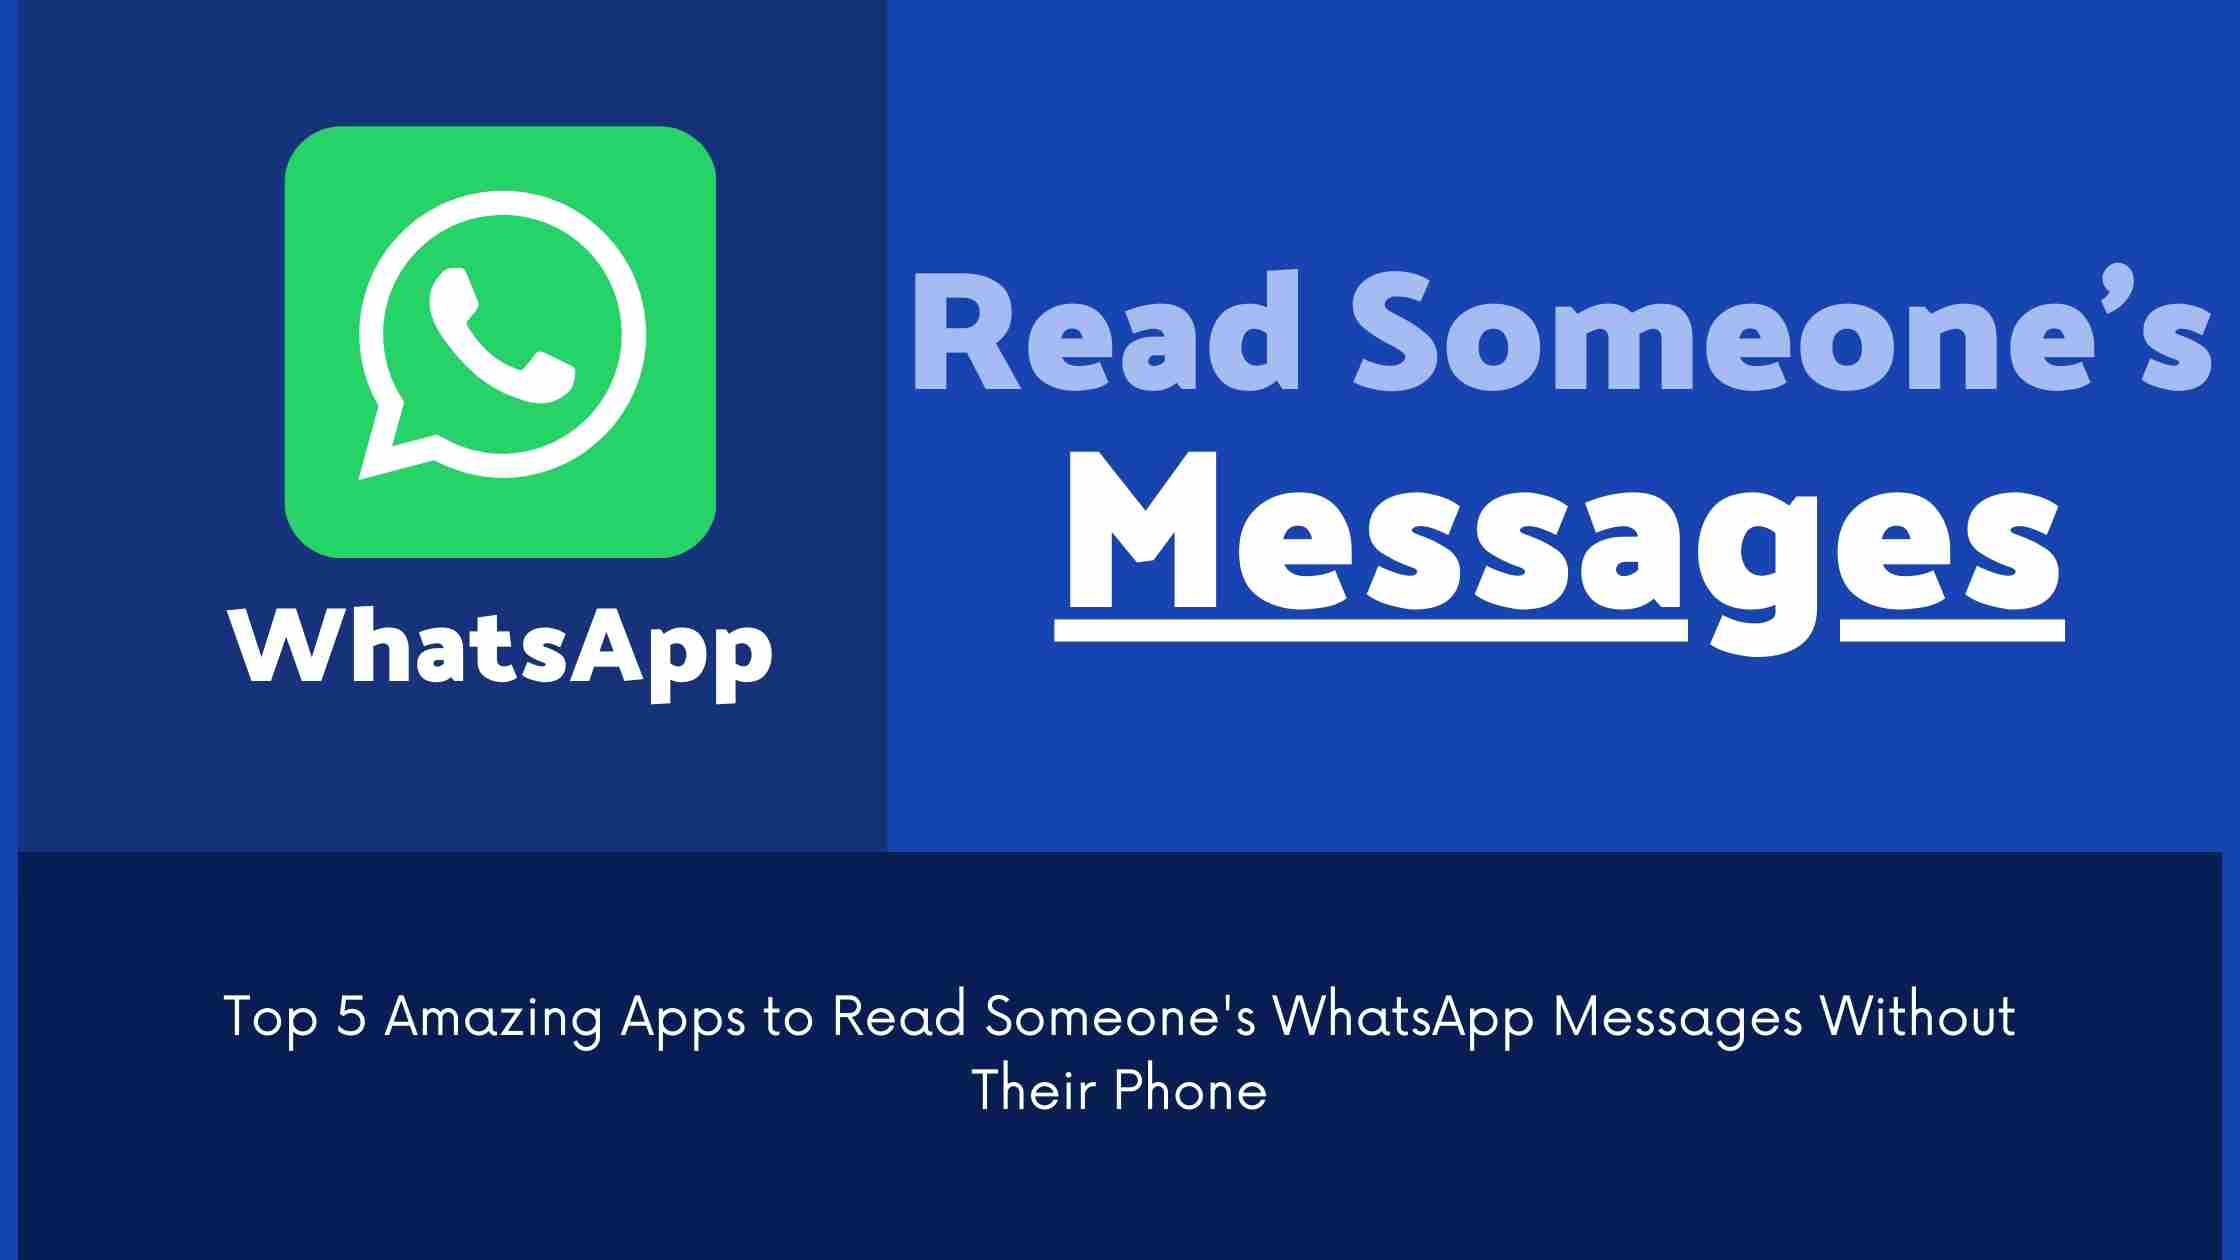 Top 5 Amazing Apps to Read Someone's WhatsApp Messages Without Their Phone